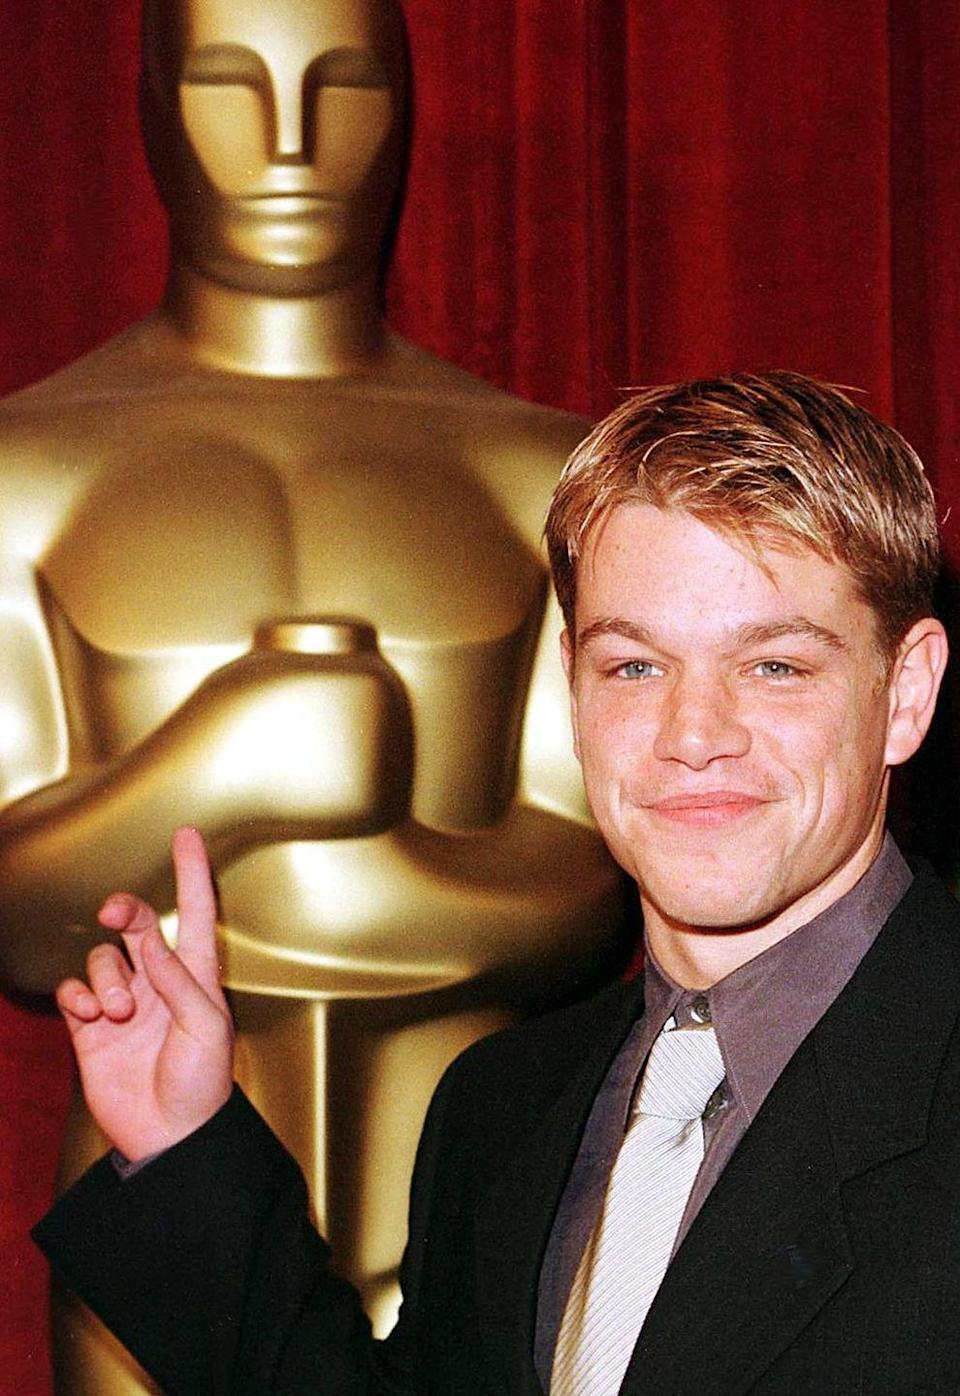 <p>Pre-<em>Bourne </em>trilogy, Matt Damon entered Hollywood as a heavy-hitting newcomer when he wrote and starred in <em>Good Will Hunting</em>. The movie was a smash hit, and the following year Damon was a double nominee at the Academy Awards as a result.</p>